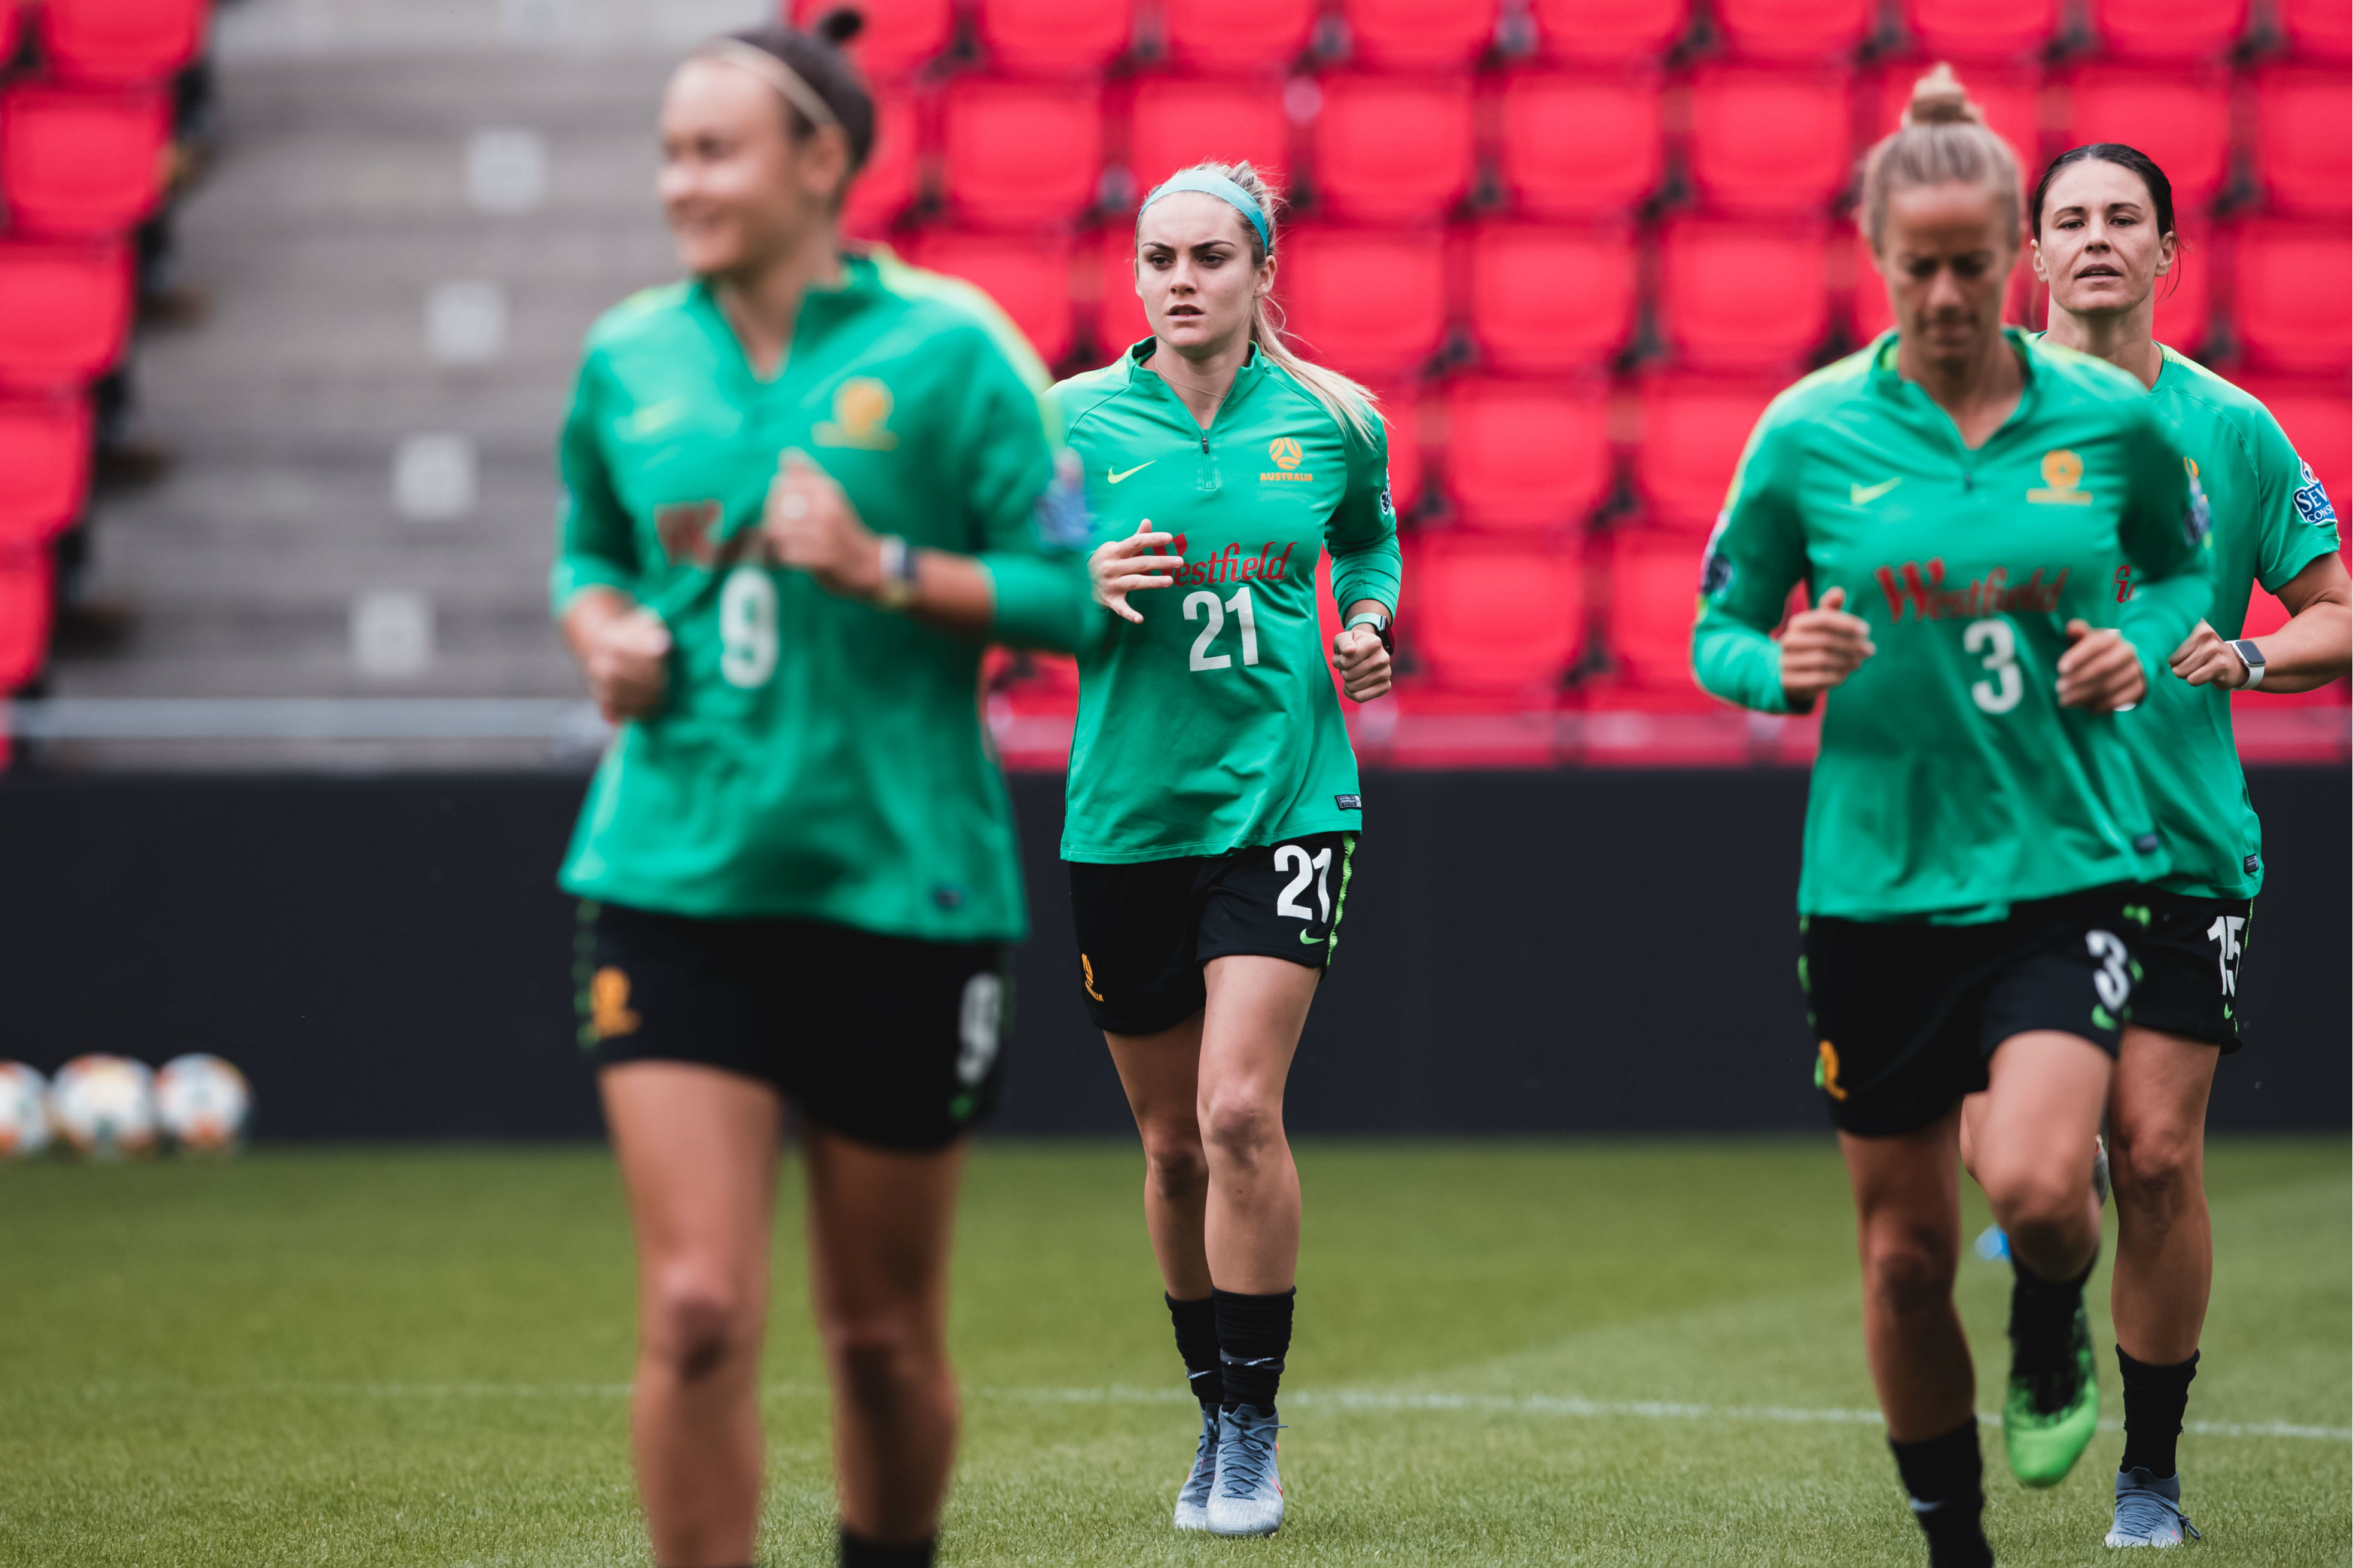 The Matildas had their first session in France at the Stade Municipal St. Amand Les Eaux